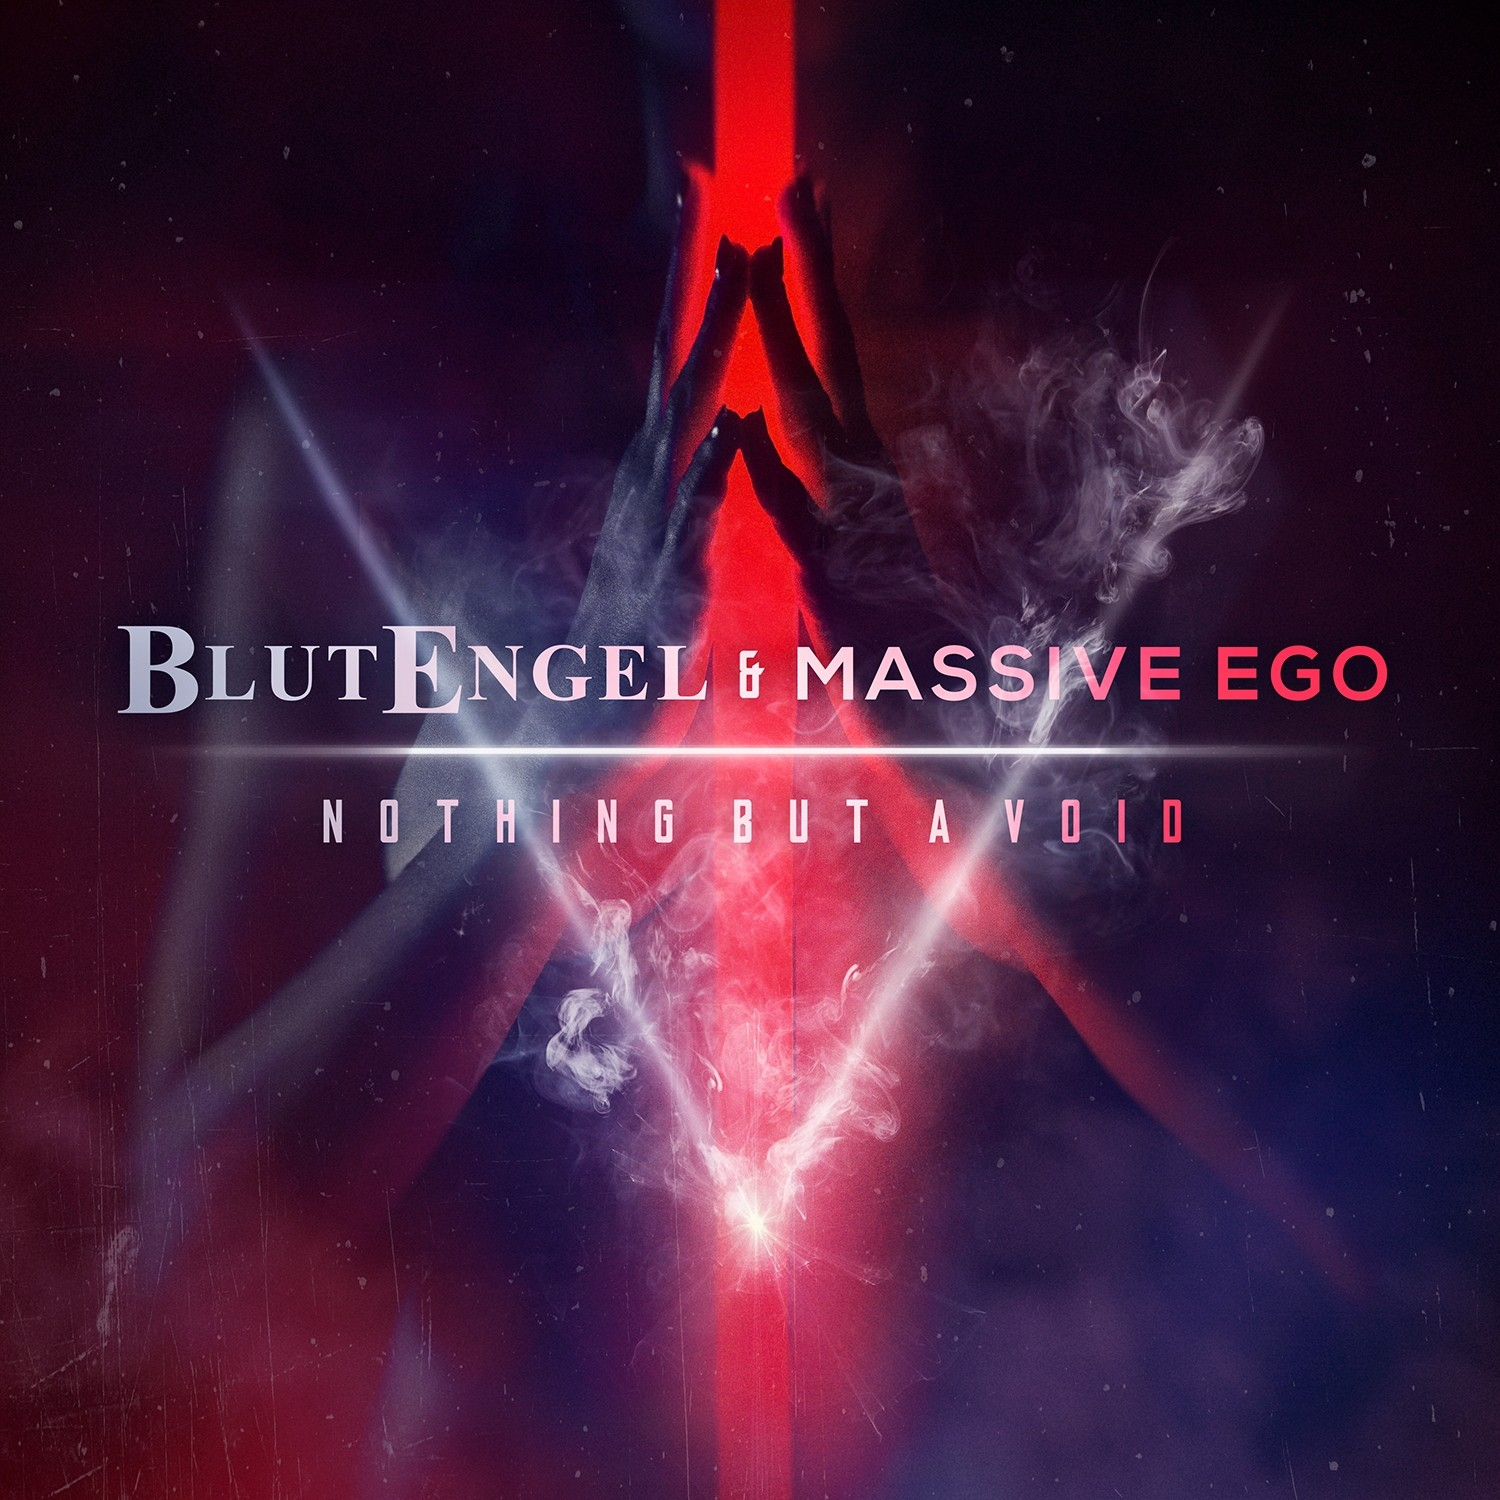 Blutengel & Massive Ego - Nothing But A Void (Limited Edition) - MaxiCD